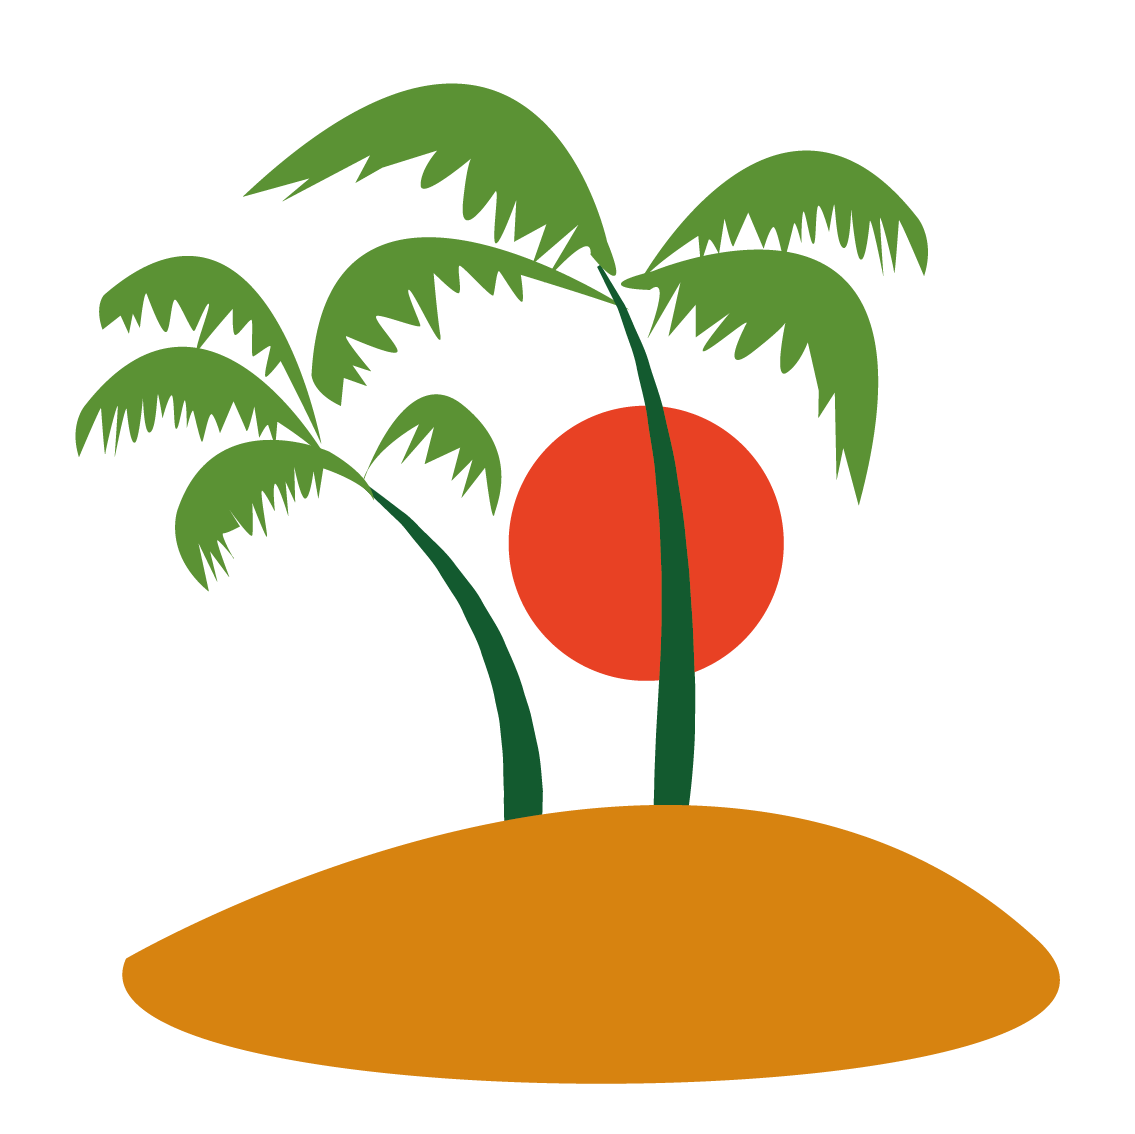 Free sun palm clipart picture Ilha do Coqueiro Coconut Tree Clip art - Vector trees and sun 1135 ... picture